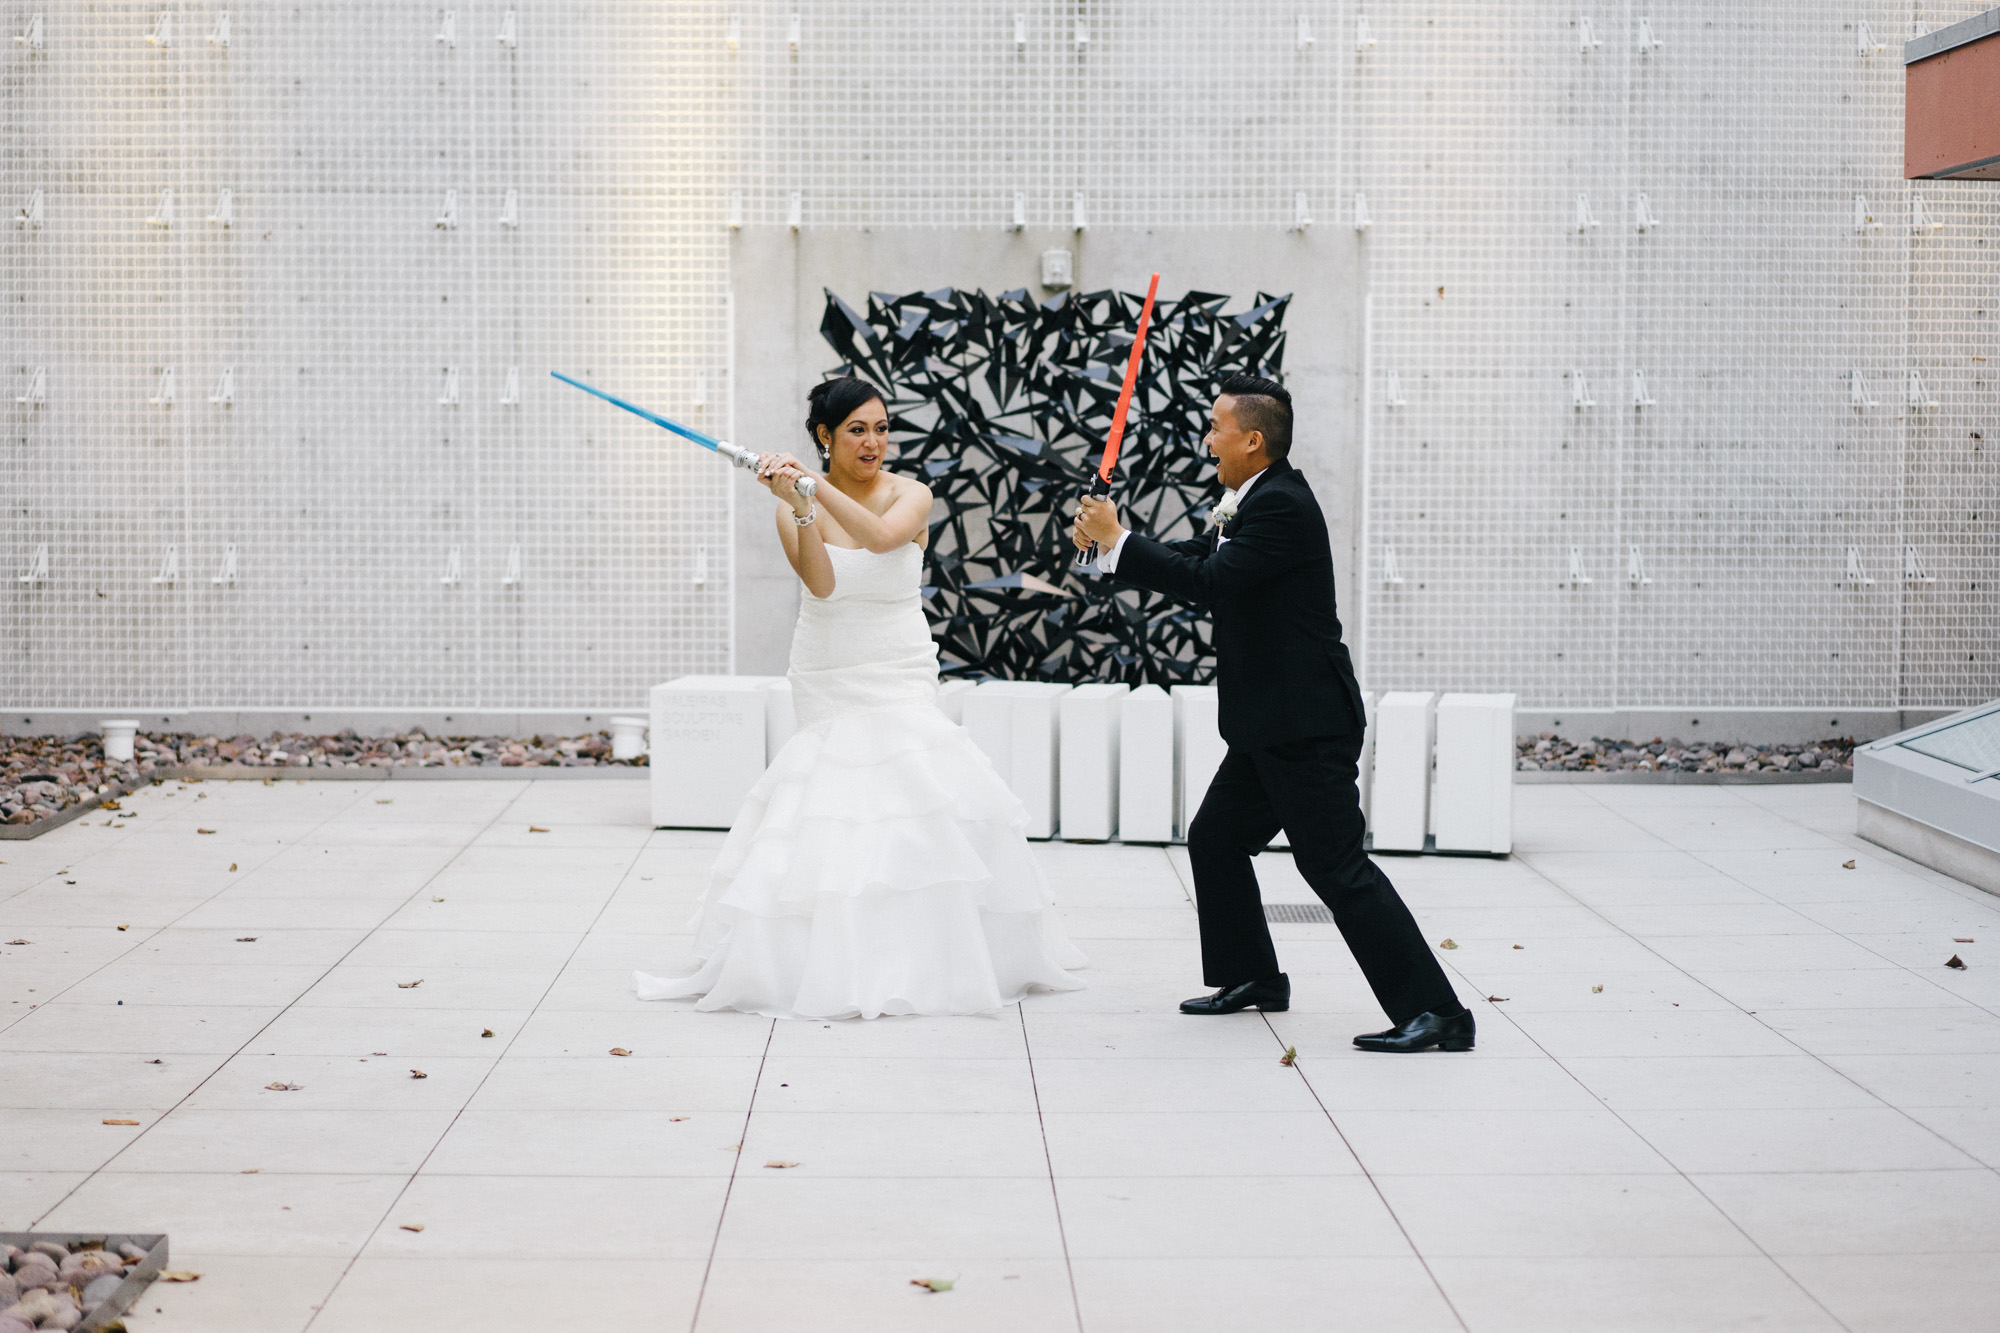 Star Wars Bride and Groom